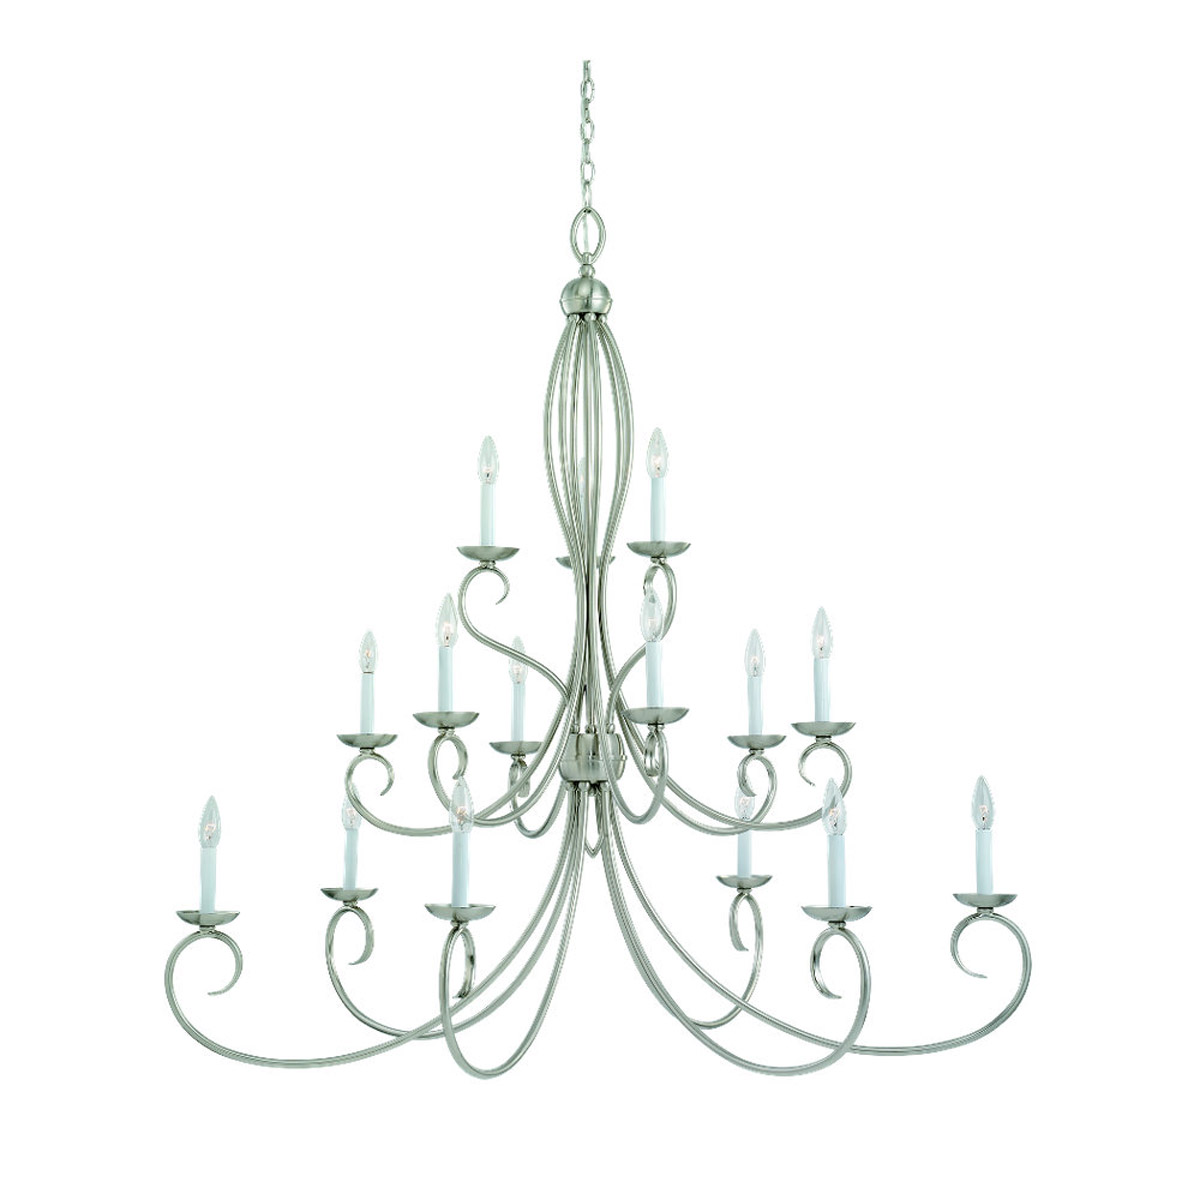 Sea Gull Lighting Pemberton 15 Light Chandelier in Brushed Nickel 31076-962 photo